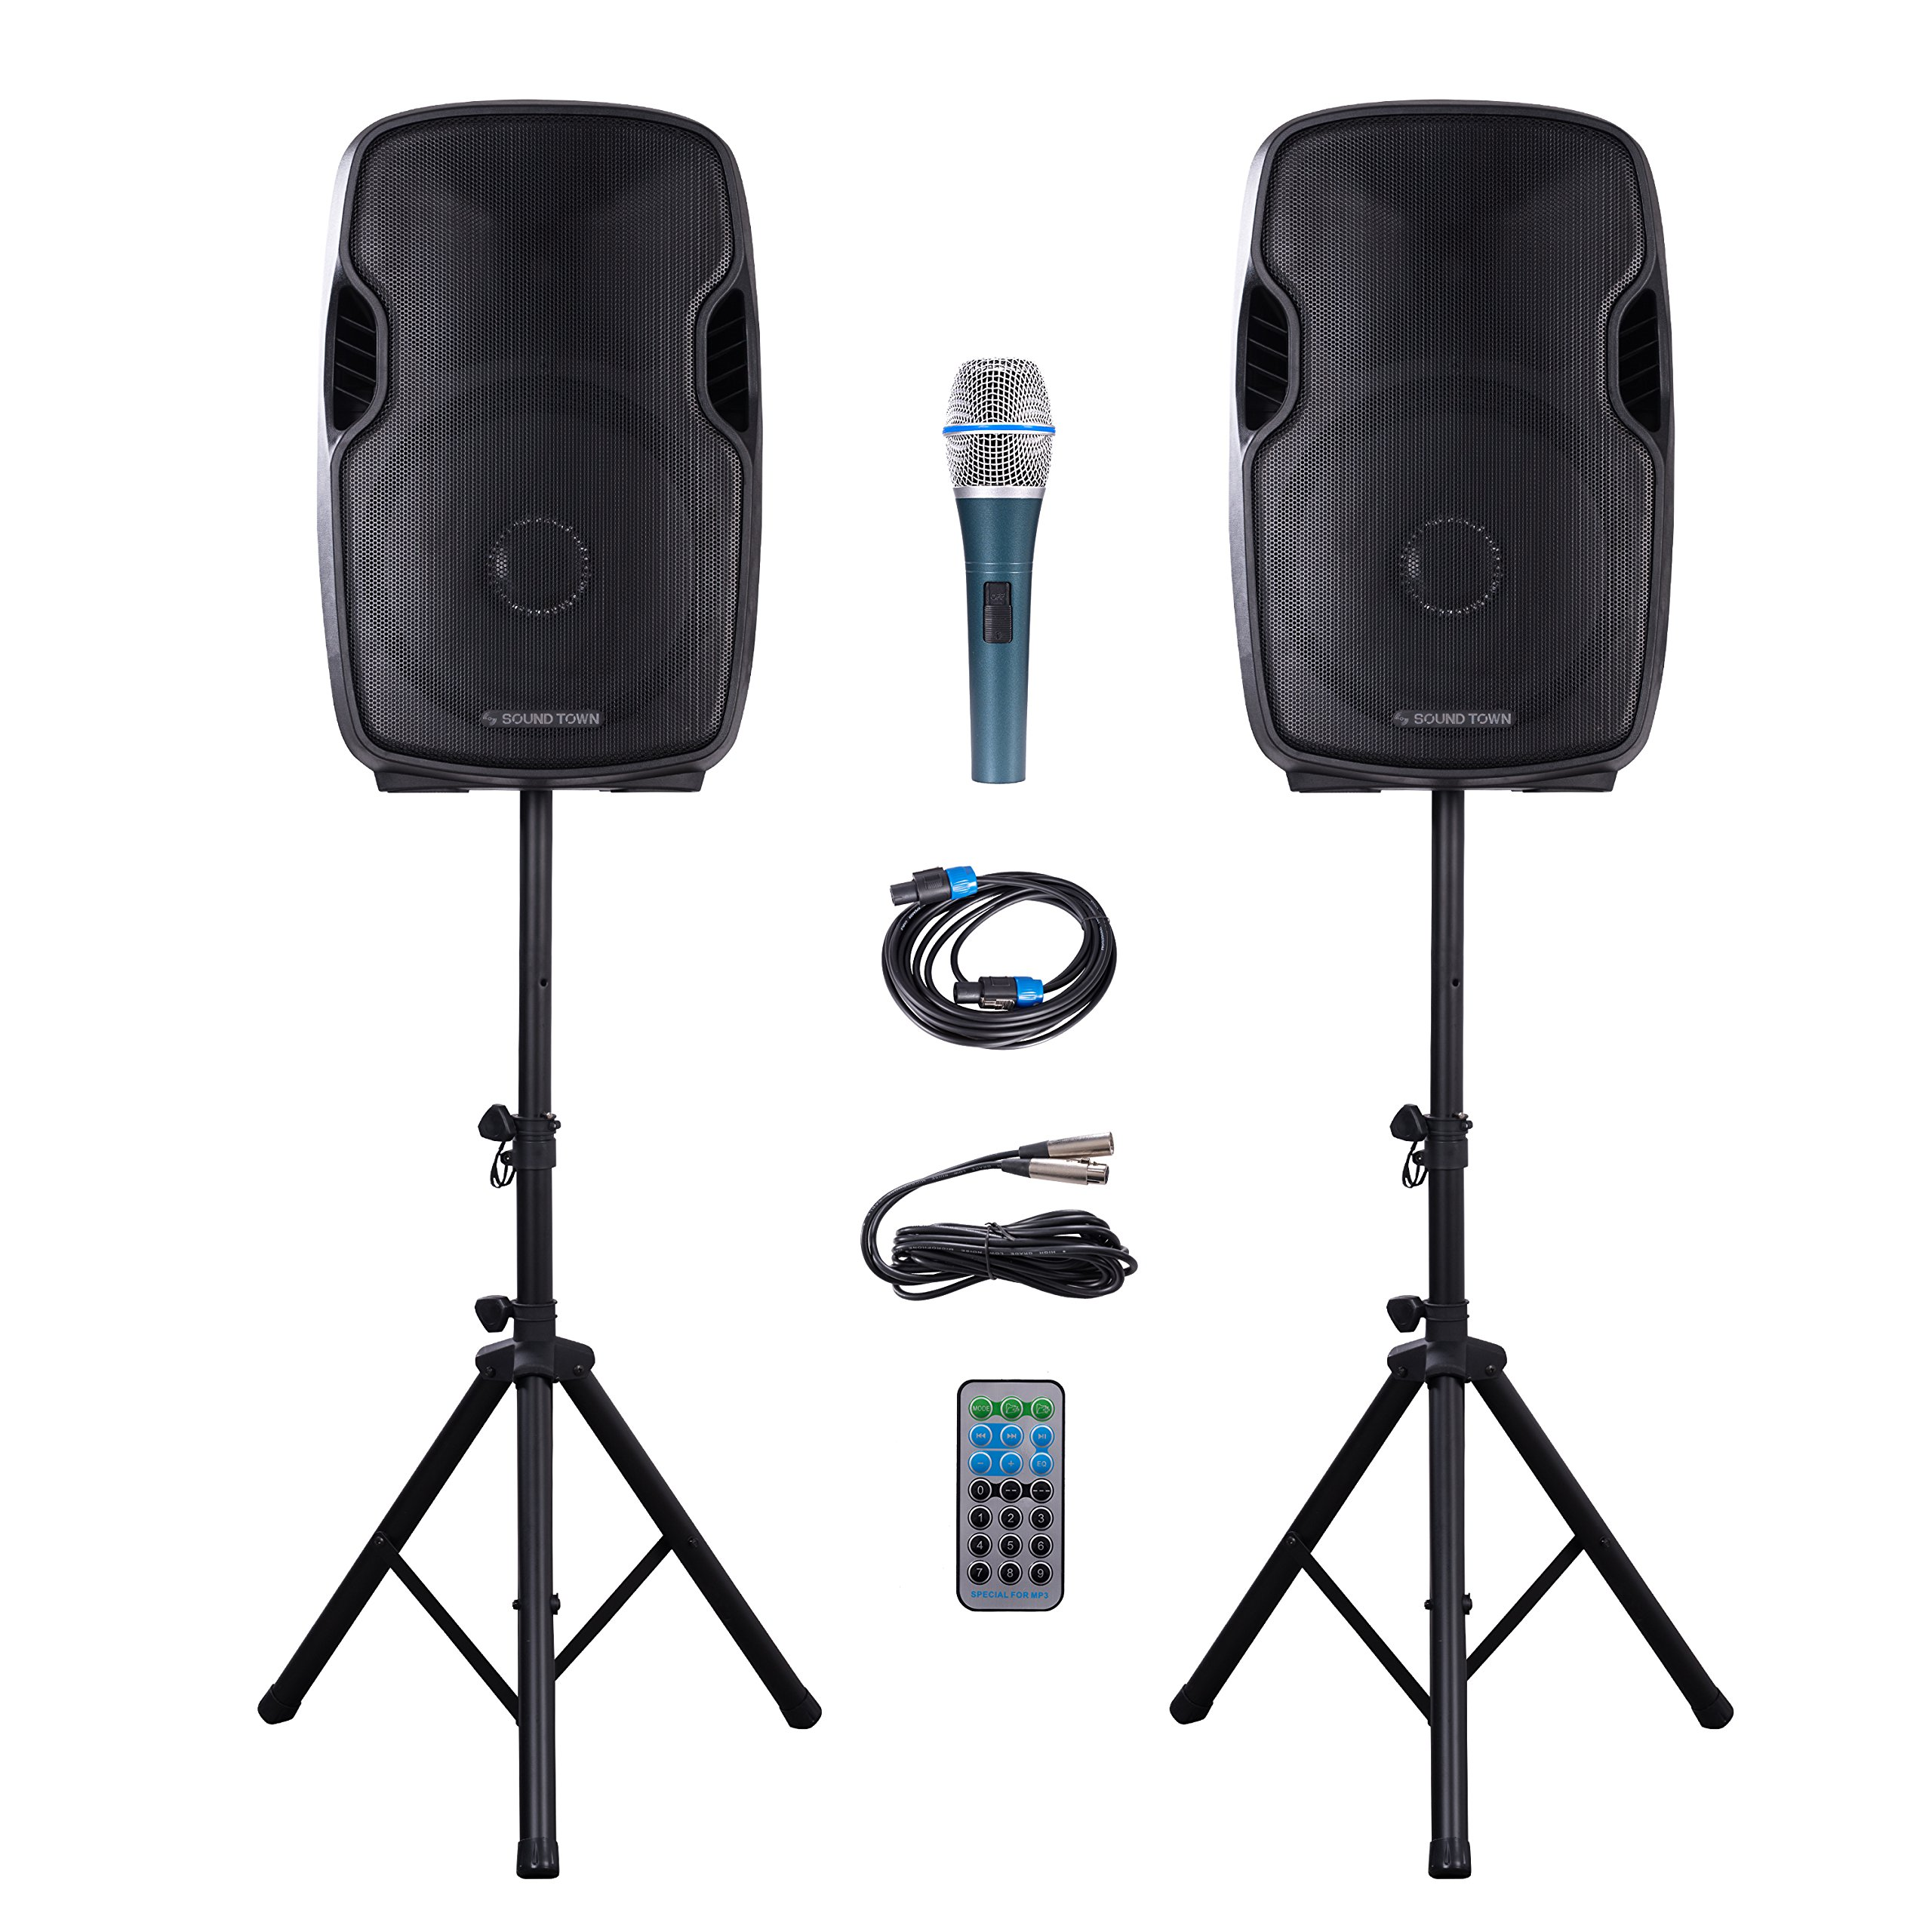 Sound Town Portable 15-inch 2-Way Powered PA Speaker System Combo Set with Bluetooth/Onboard Equalizer/USB/SD Card Reader/LED Light/1 Mic/2 Speaker Stands (DEIMOS-15PSC)